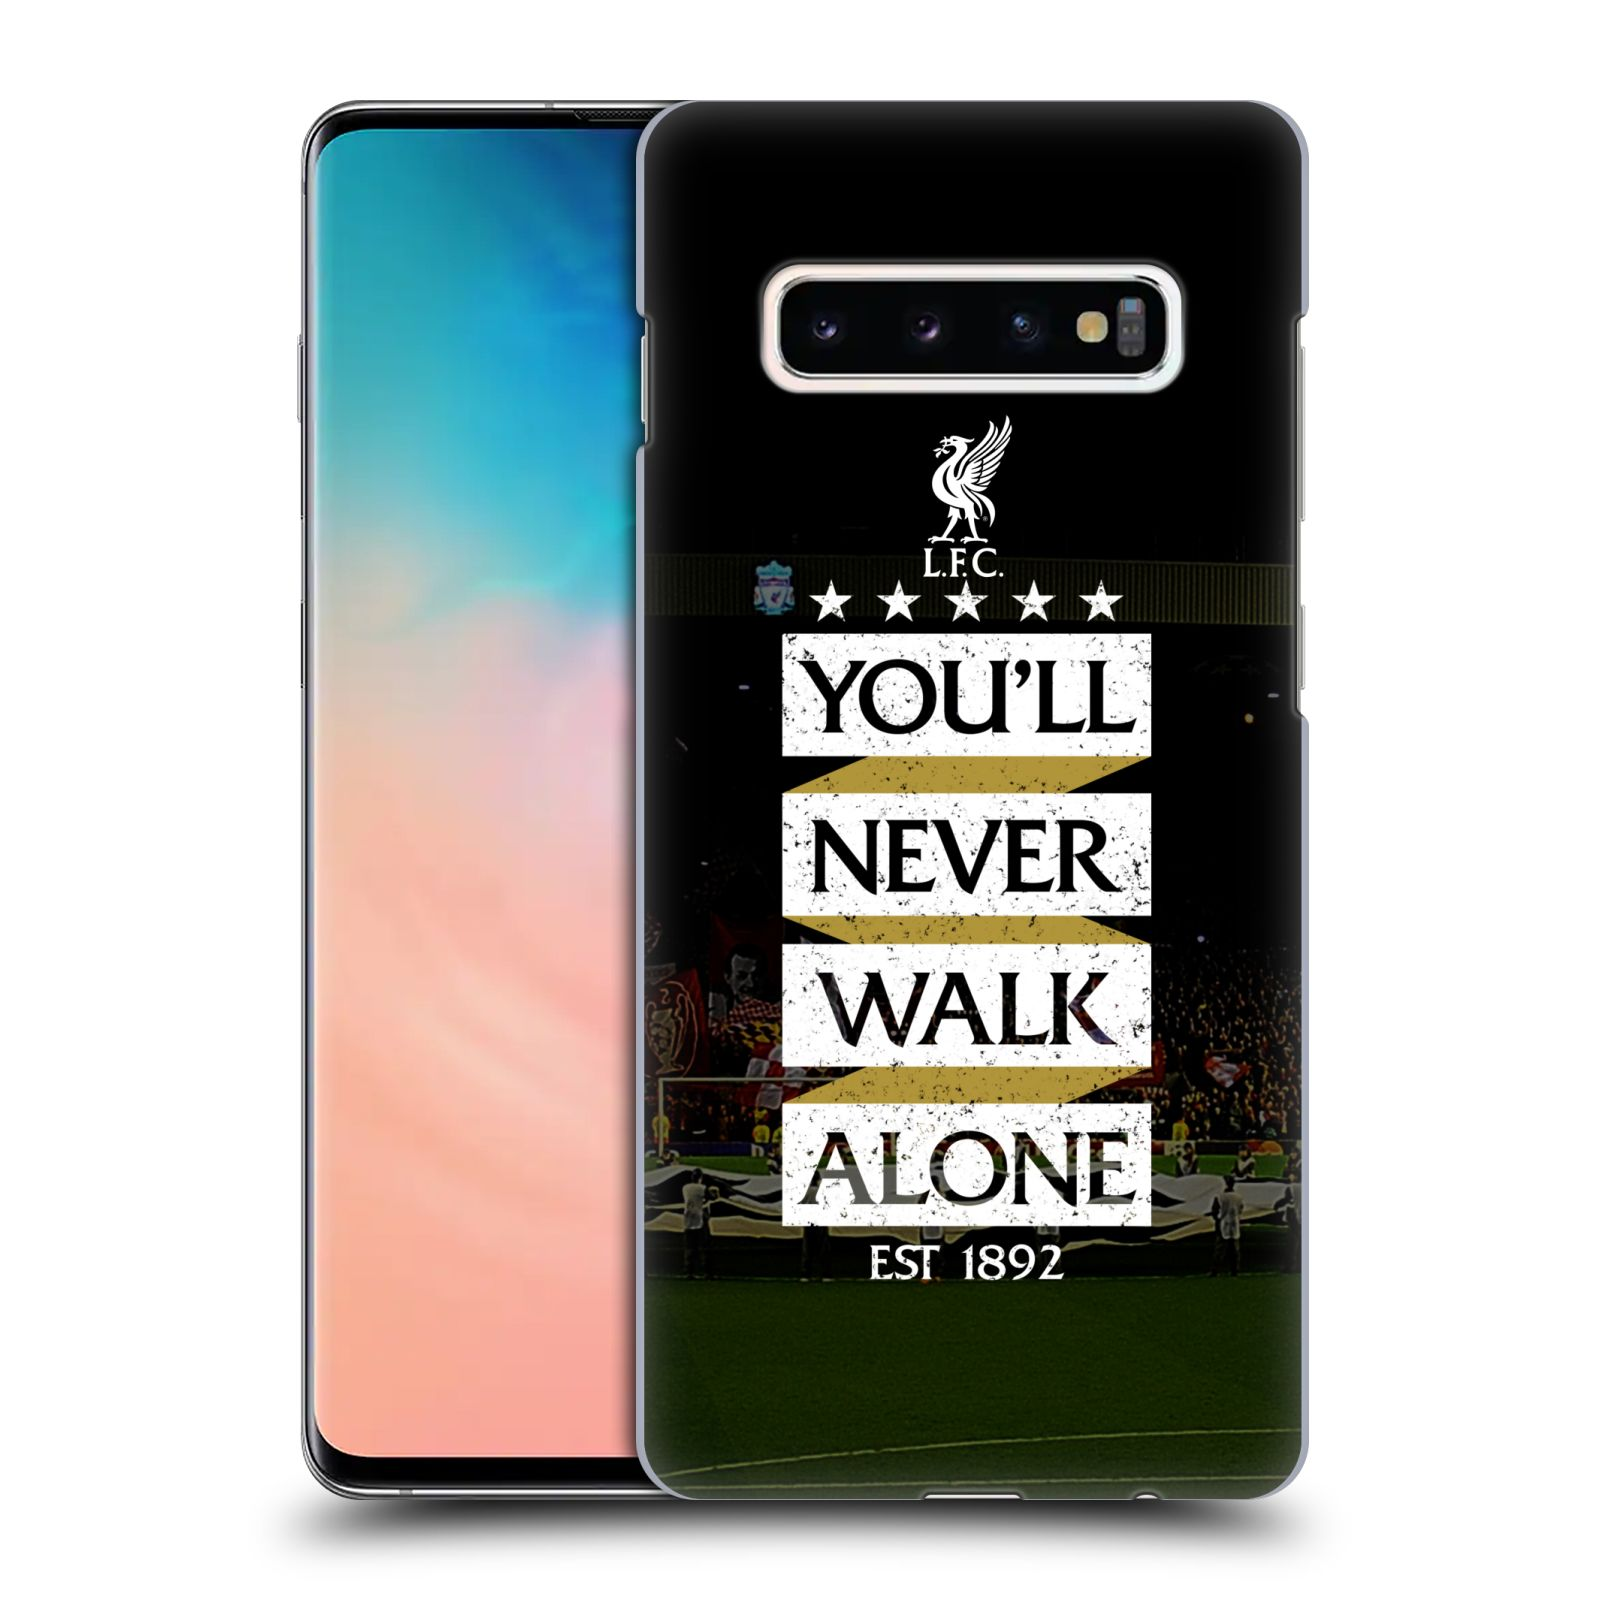 Plastové pouzdro na mobil Samsung Galaxy S10 Plus - Head Case - LFC You'll Never Walk Alone